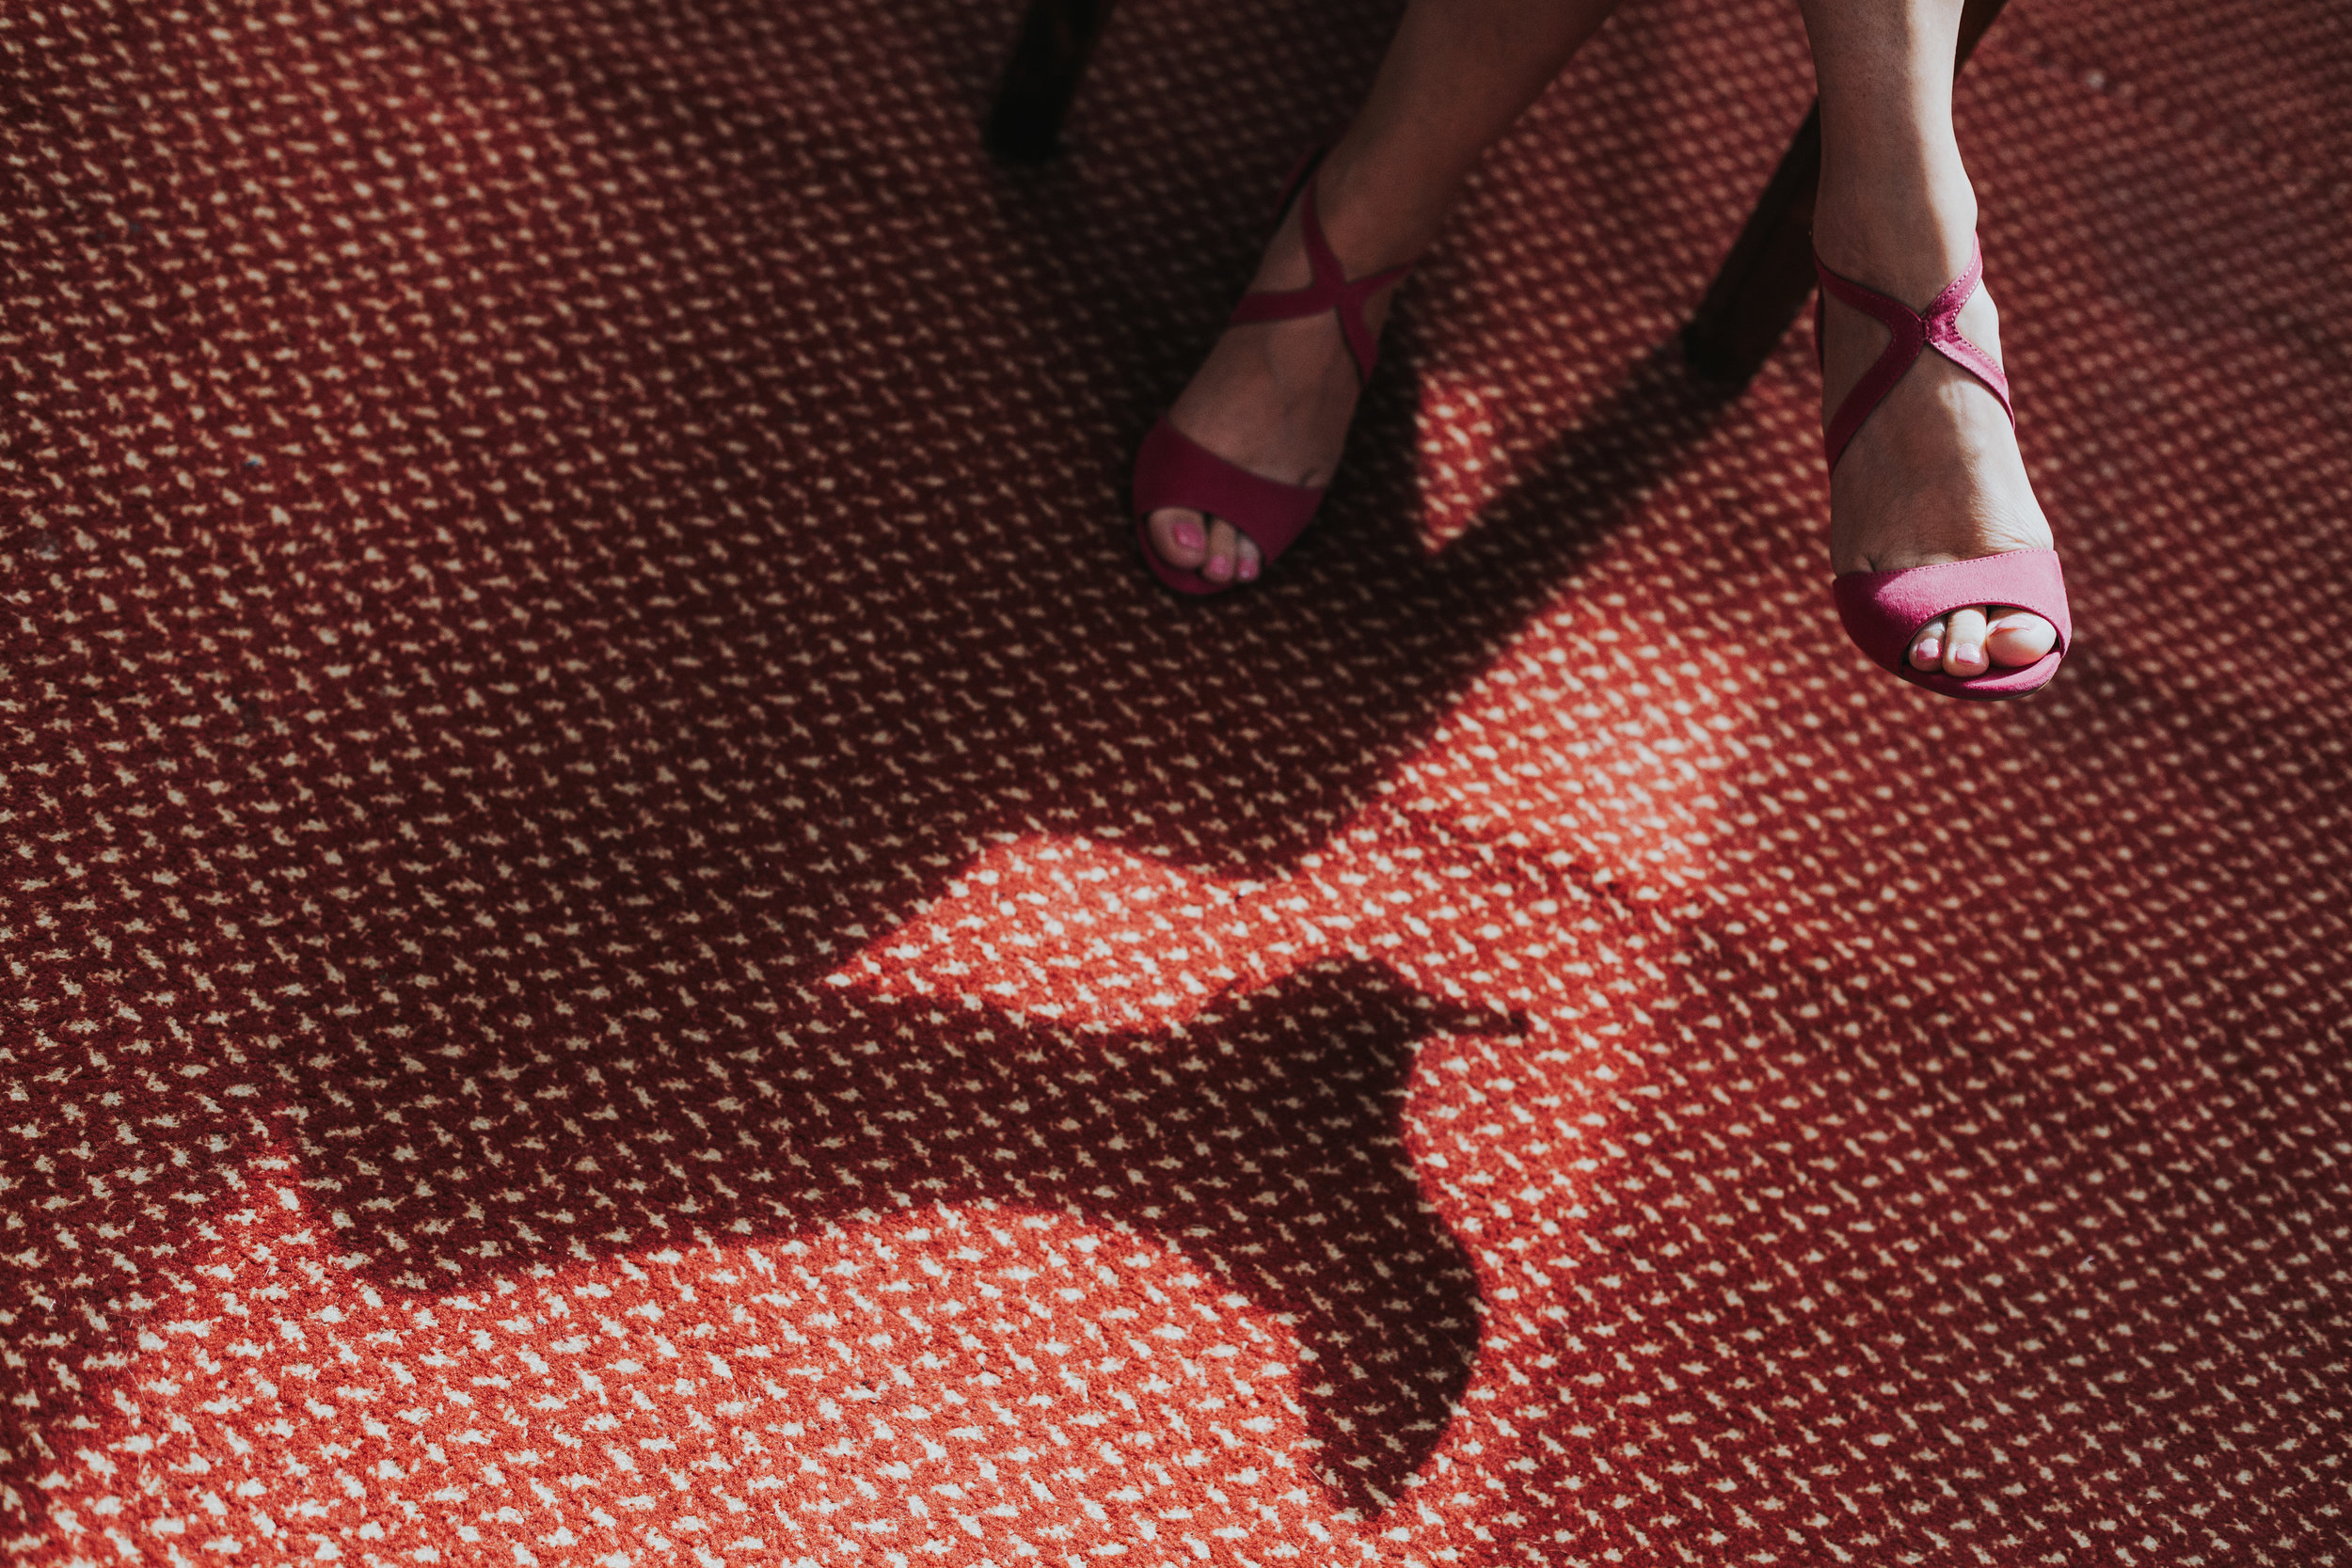 Patch of light with the shadow of a high heeled shoe.